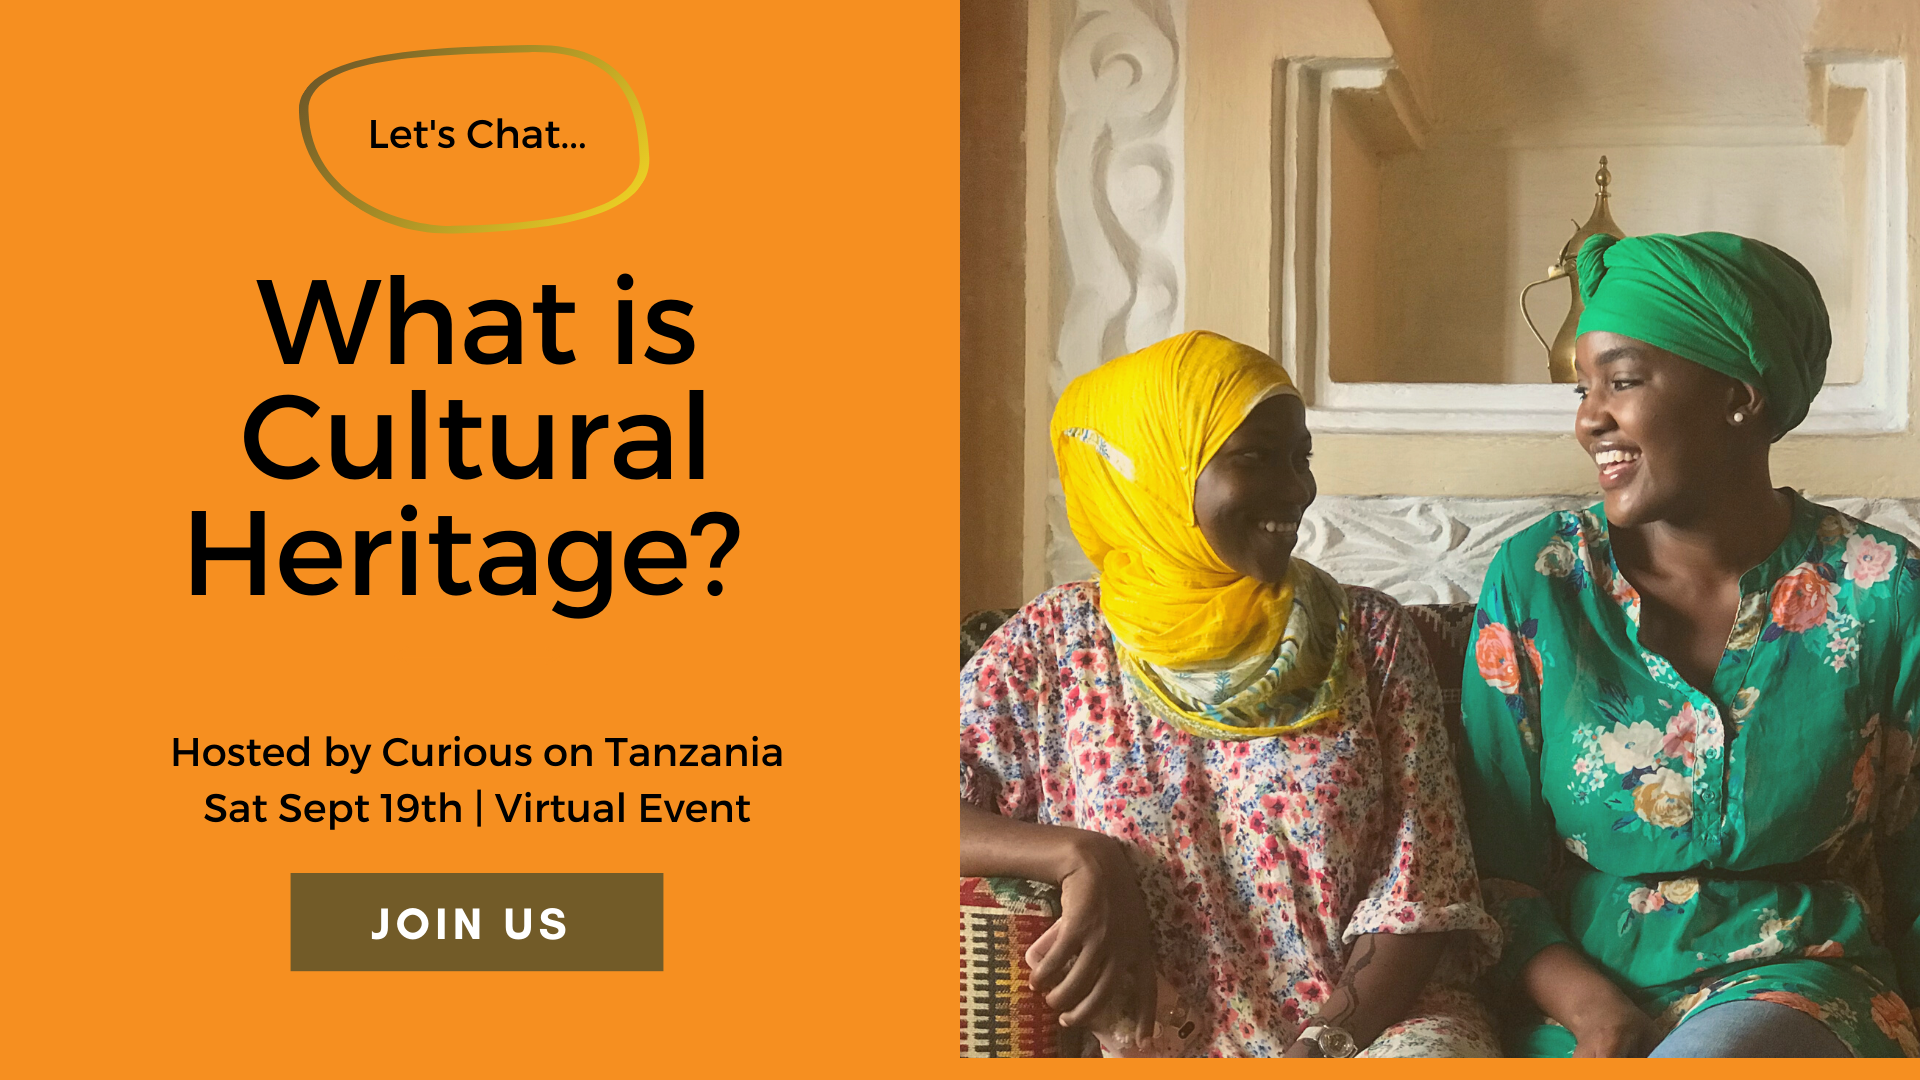 Let's Chat: What is Cultural Heritage + Tanzania